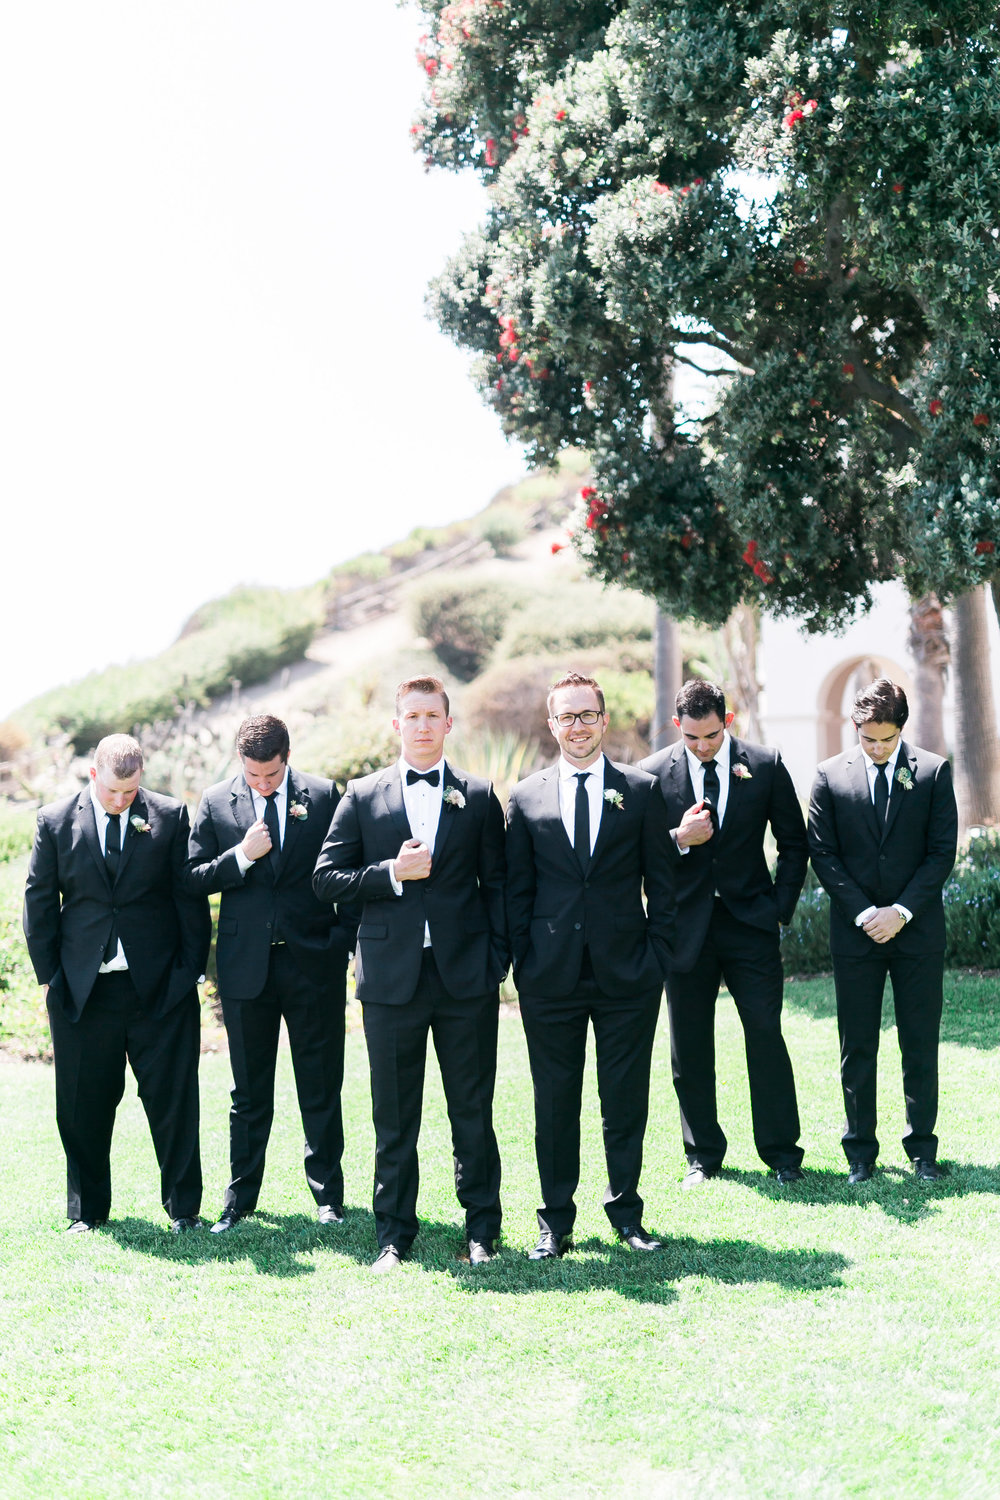 Groomsmen at The Bacara Santa Barbara.    CREDITS:  Destination Wedding Planner  ANDREA EPPOLITO EVENTS   ·  Images by  J.ANNE P  HOTOGRAPHY   ·  Video  HOO FILMS   ·  Venue Ritz Carlton Bacara Santa Barbara  · Gown  MONIQUE LHULLIER  · Bridesmaids Dresses  SHOW ME YOUR MUMU  · Stationery  SHE PAPERIE  · Bride's Shoes  BADGLEY MISCHKA  · Hair and Makeup  TEAM HAIR AND MAKEUP  · Floral  BLUE MAGNOLIA  · Linen  LA TAVOLA  · Decor Rentals  TENT MERCHANT  · Calligraphy  EBB  ·Lighting  FIVE STAR AV  · Ice Cream Station  MCCONNELL'S ICE CREAM